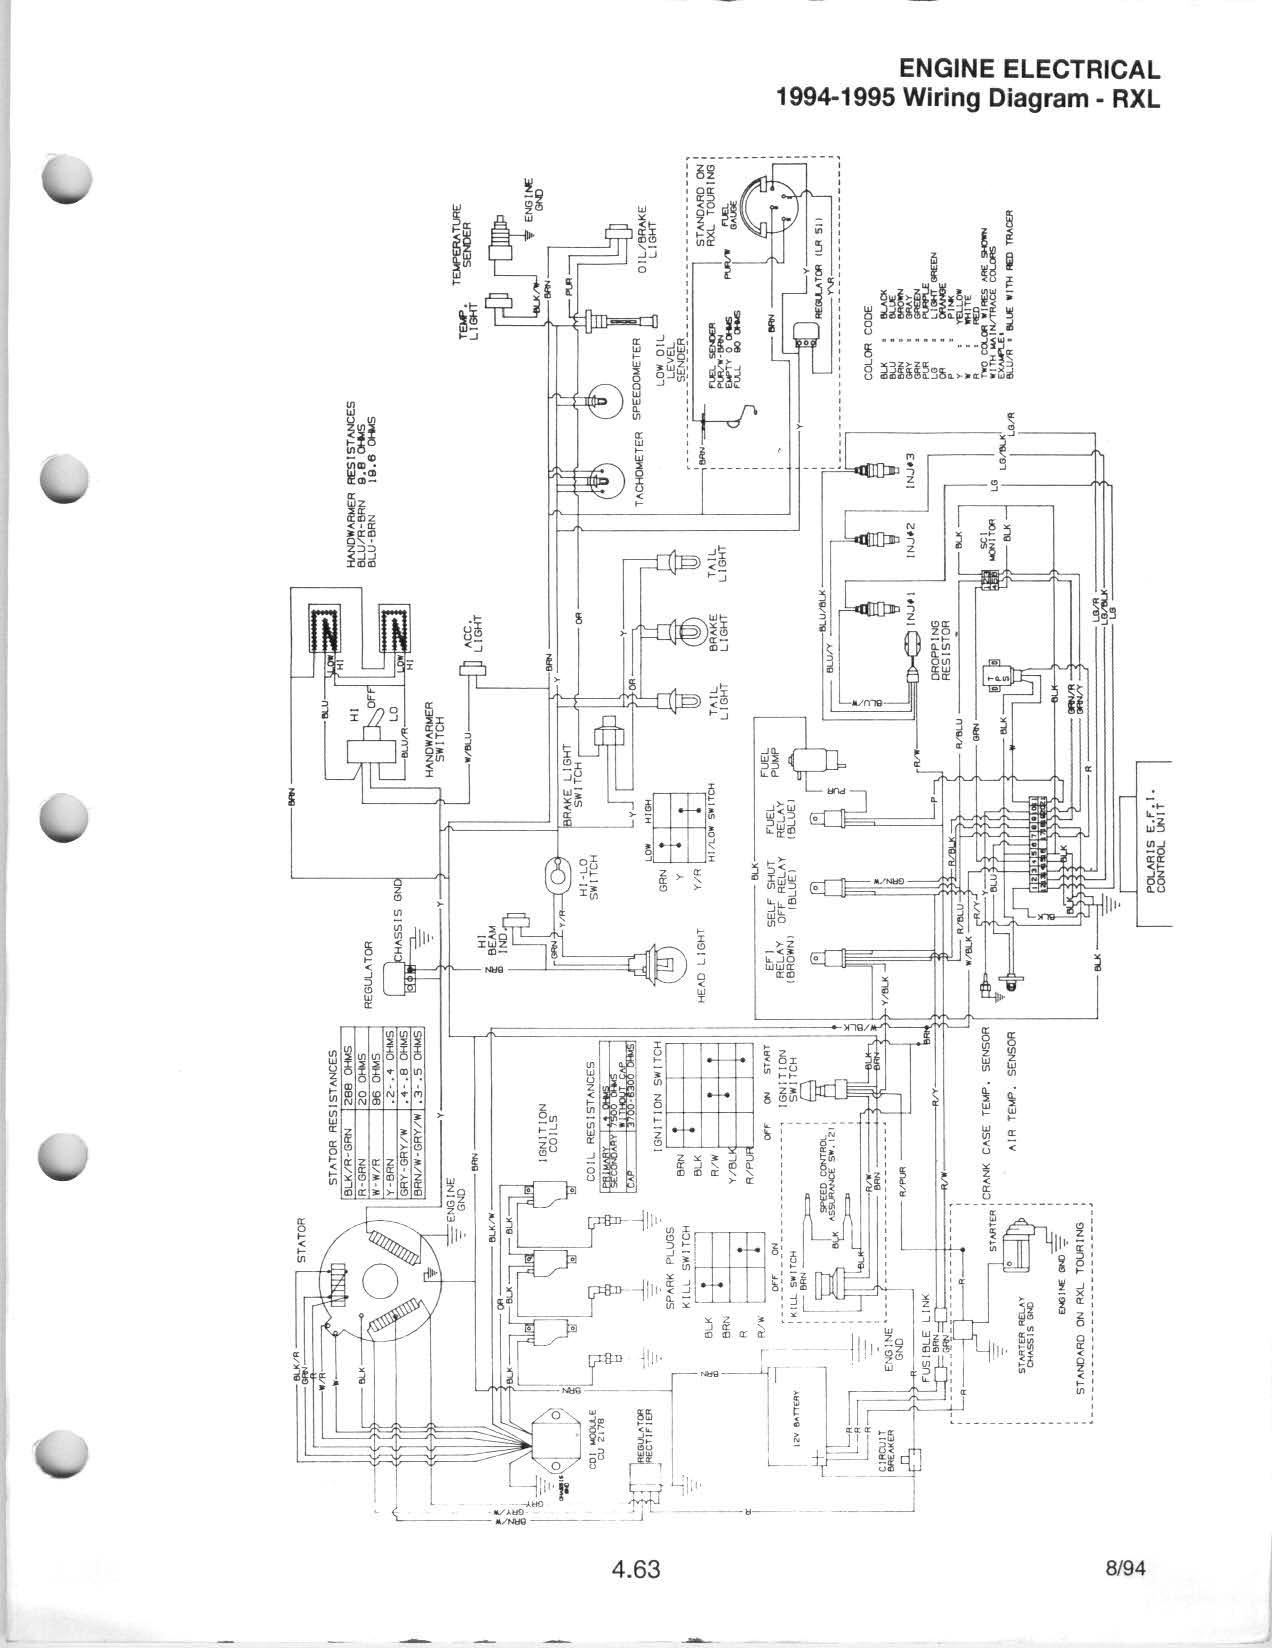 Diagram  2008 Polaris Ranger 700 Wiring Diagram Full